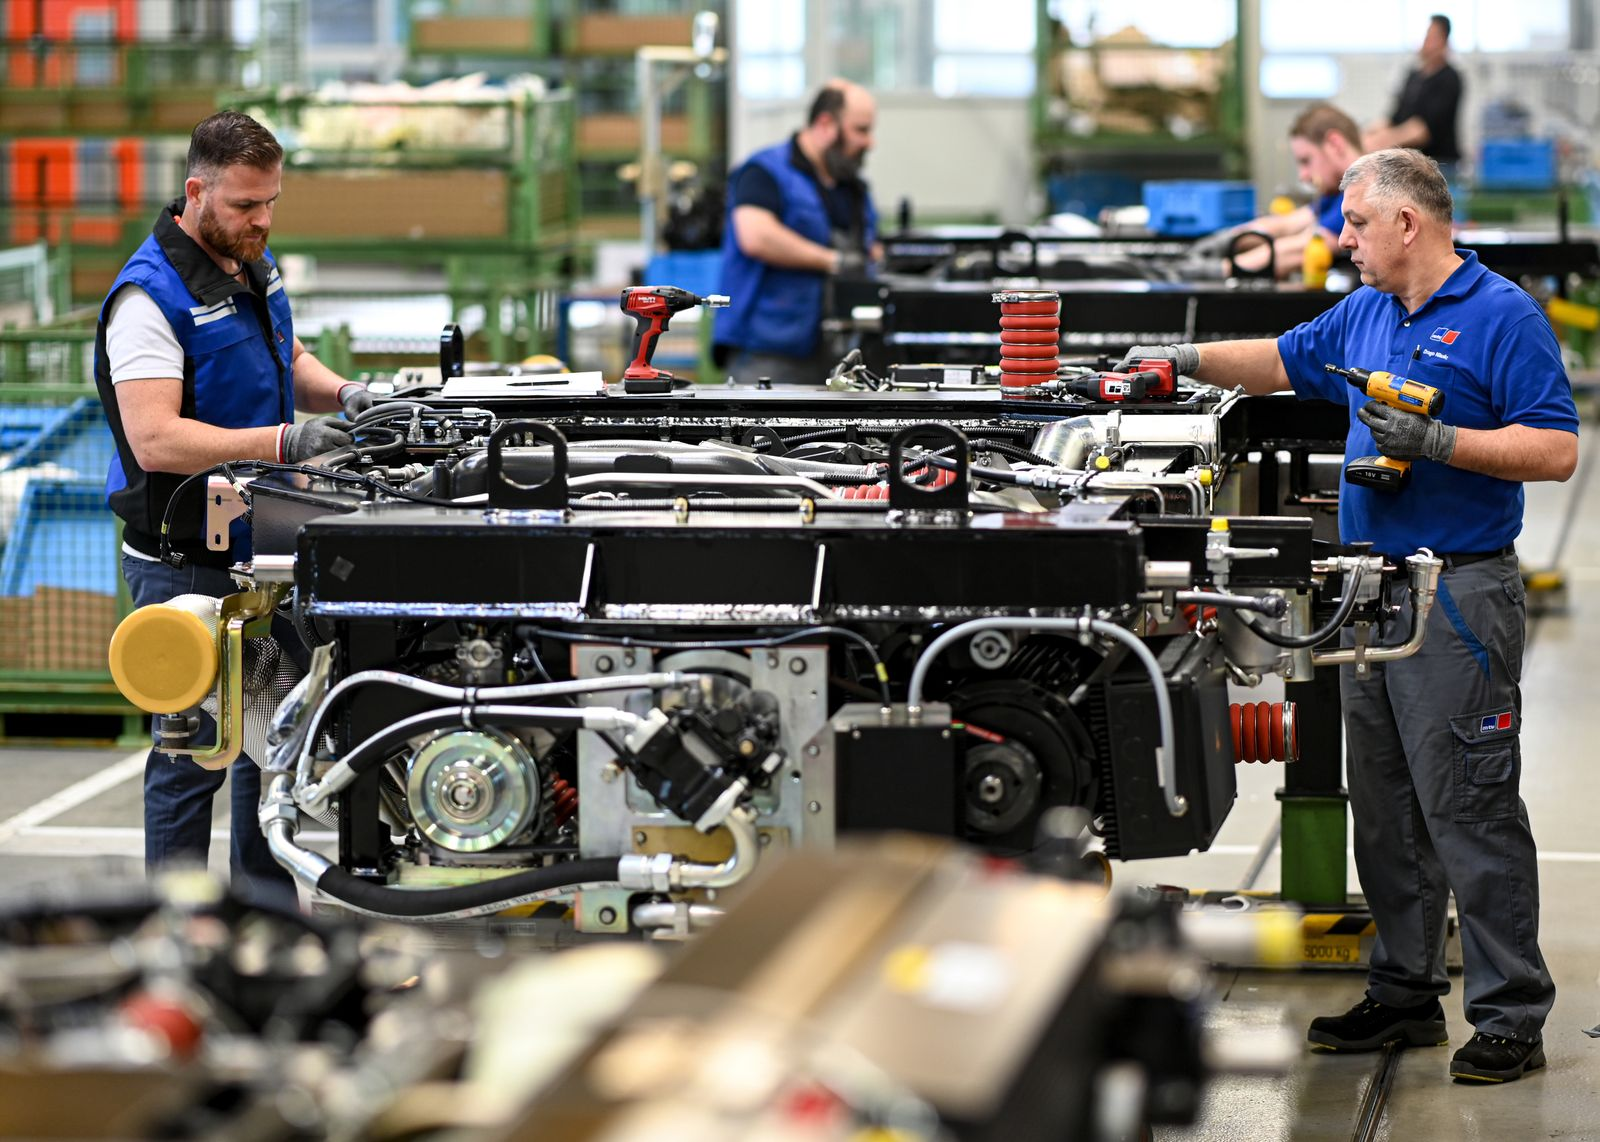 Produktion bei Rolls-Royce Power Systems